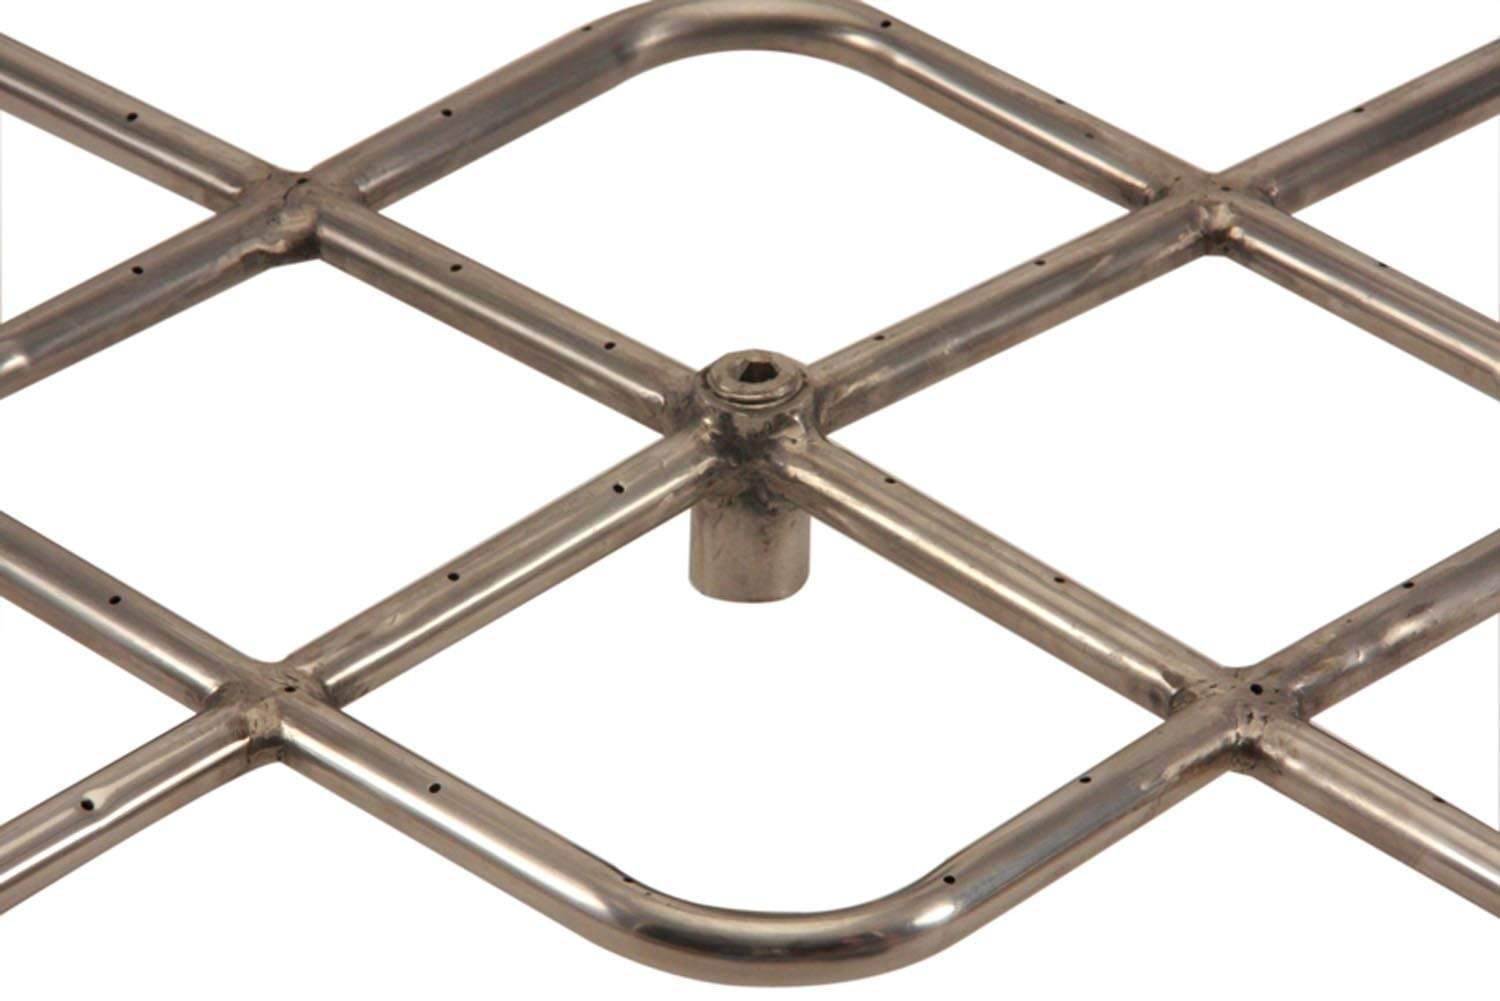 Square natural gas fire pit burner 18x18 inch new ebay for Square fire ring